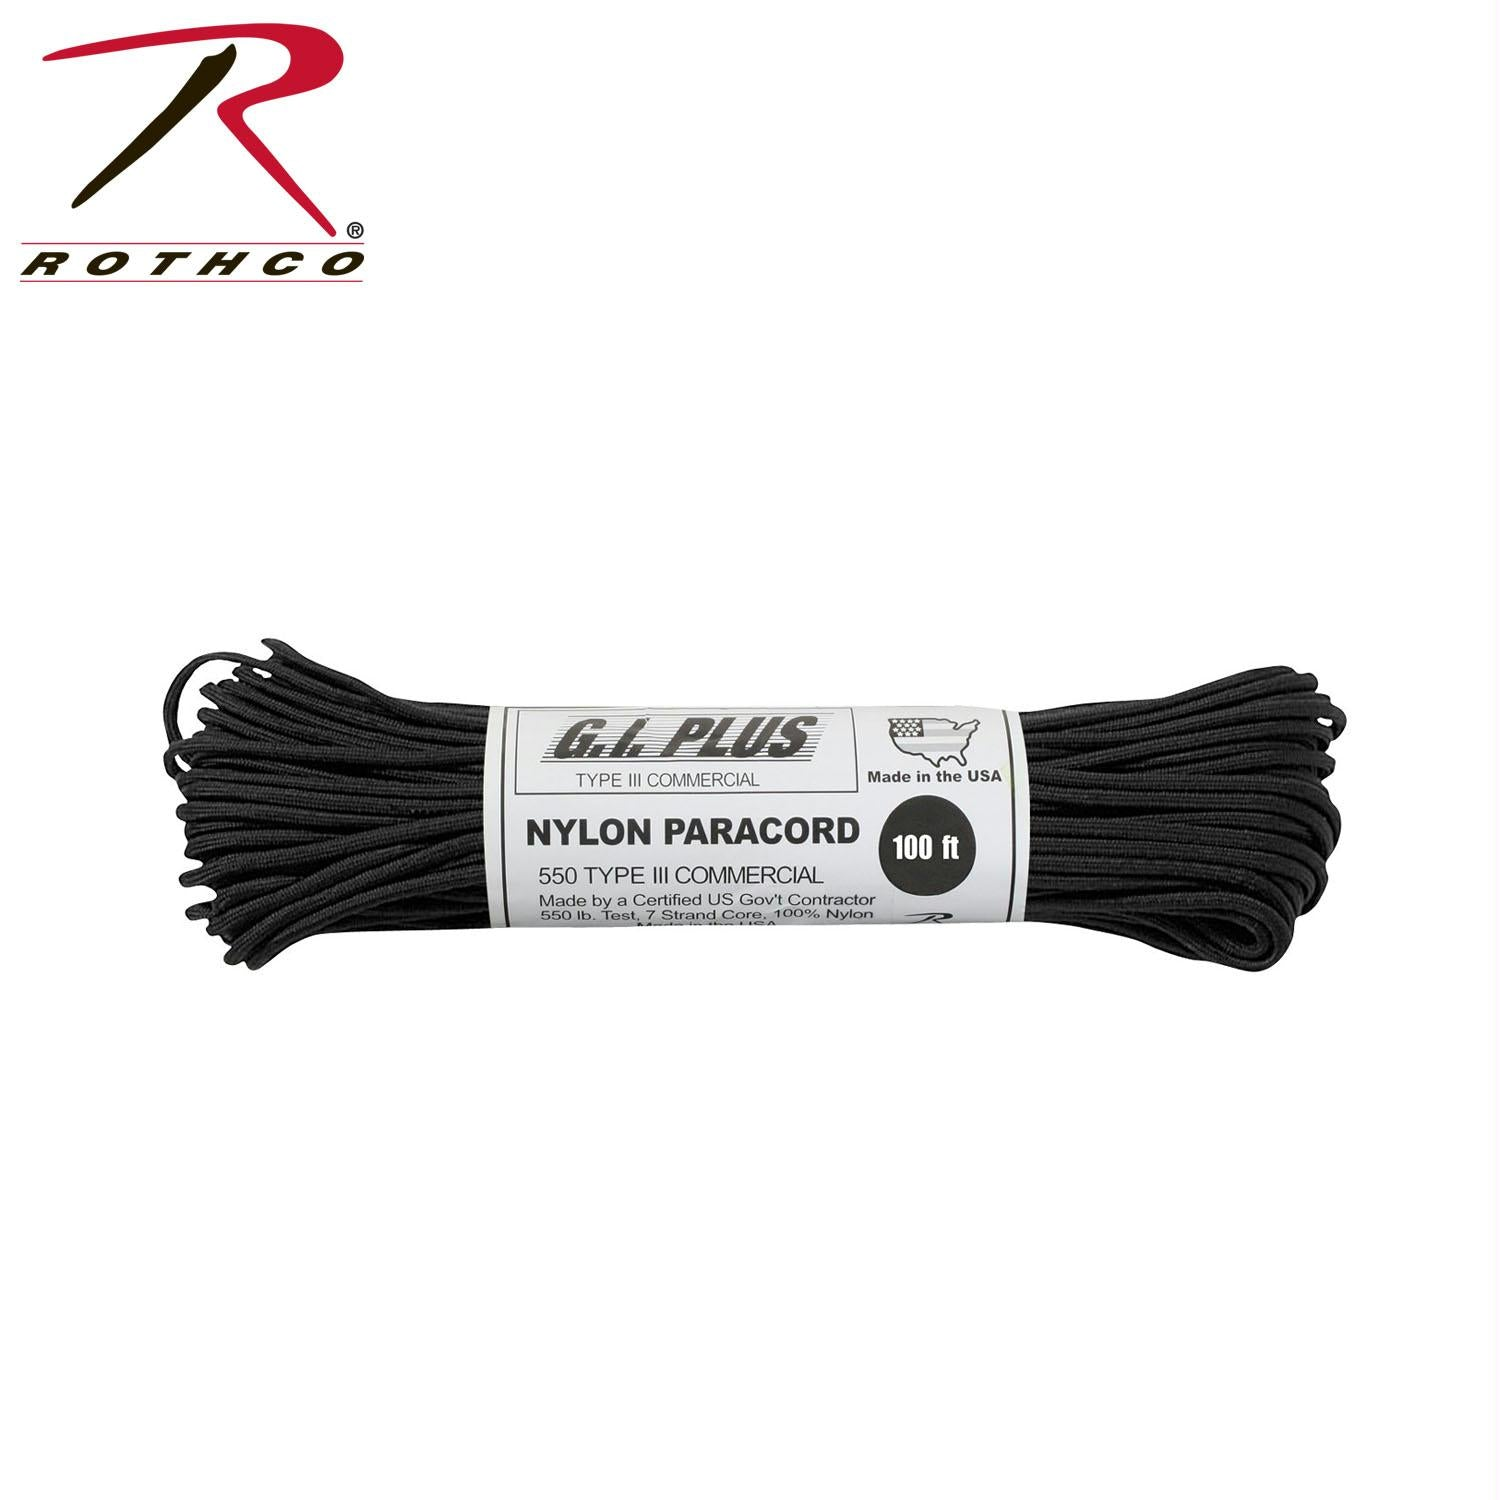 Rothco Nylon Paracord Type III 550 LB 100FT - Black